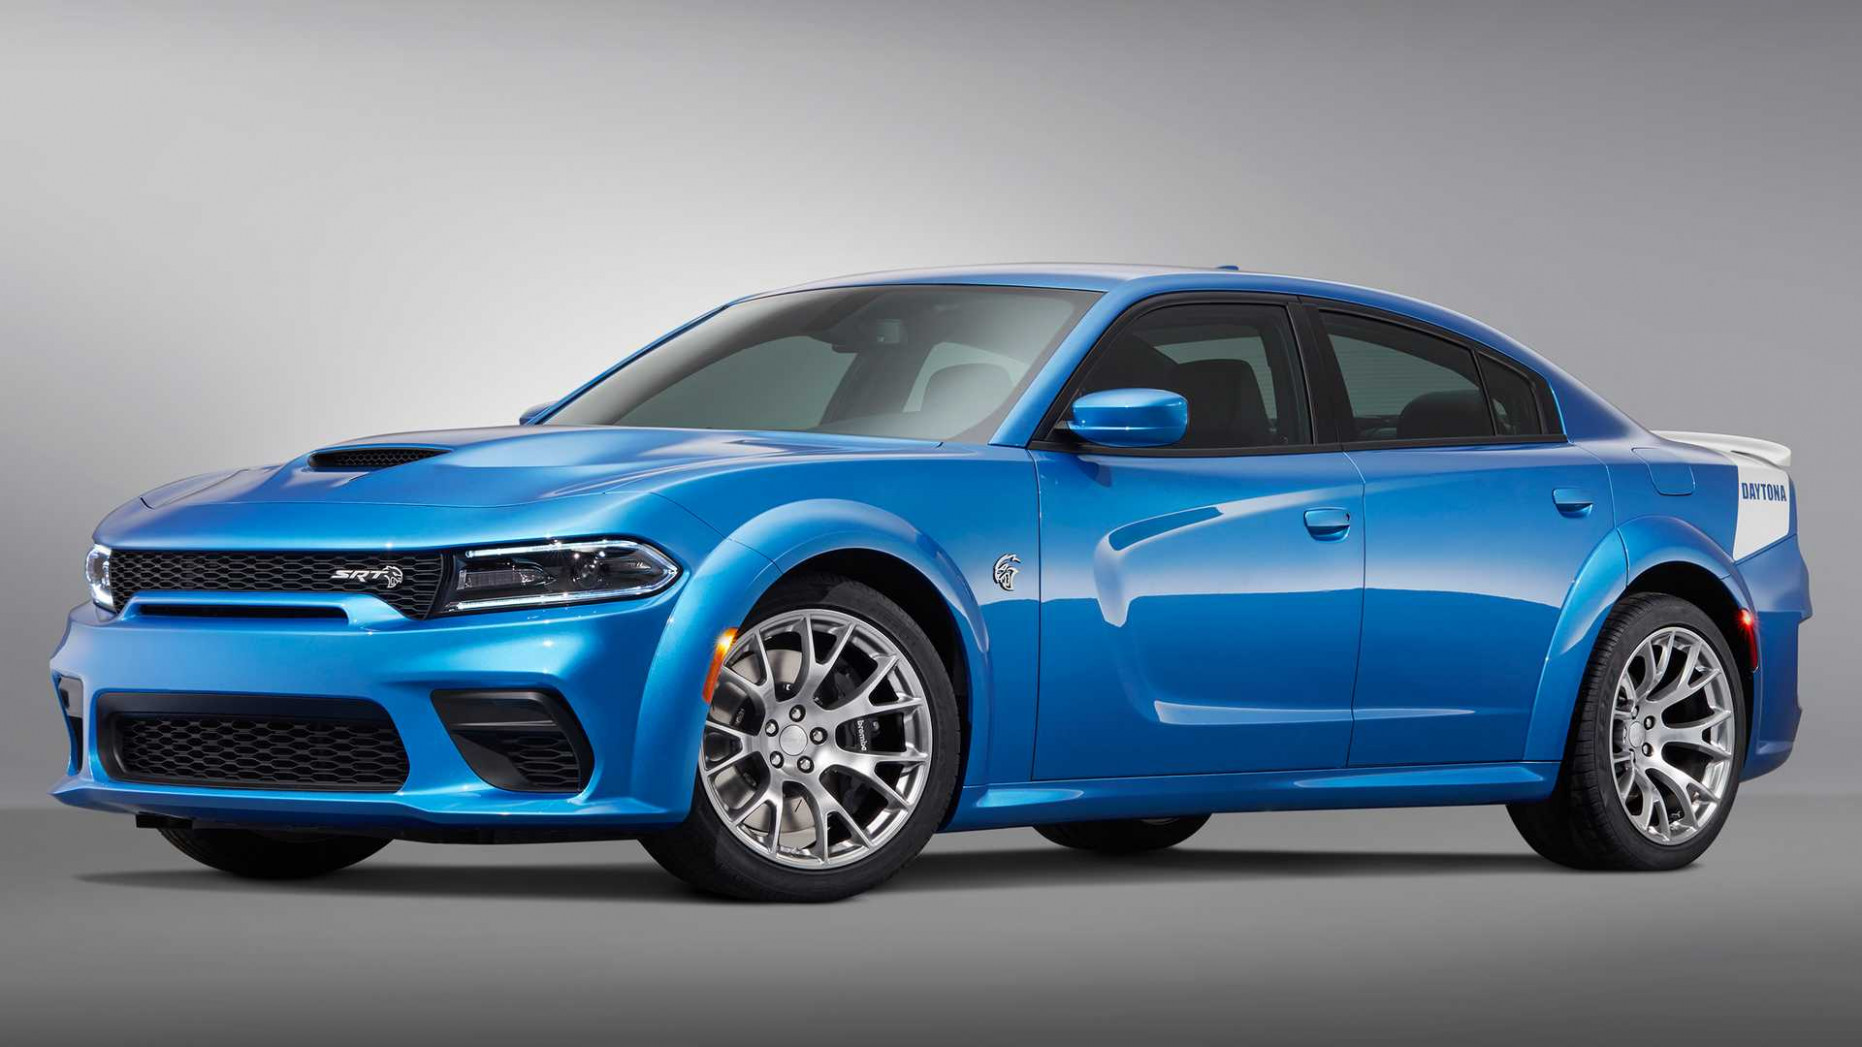 Dodge Charger Daytona Returns For 10 With Limited Production Run - 2020 dodge charger sxt